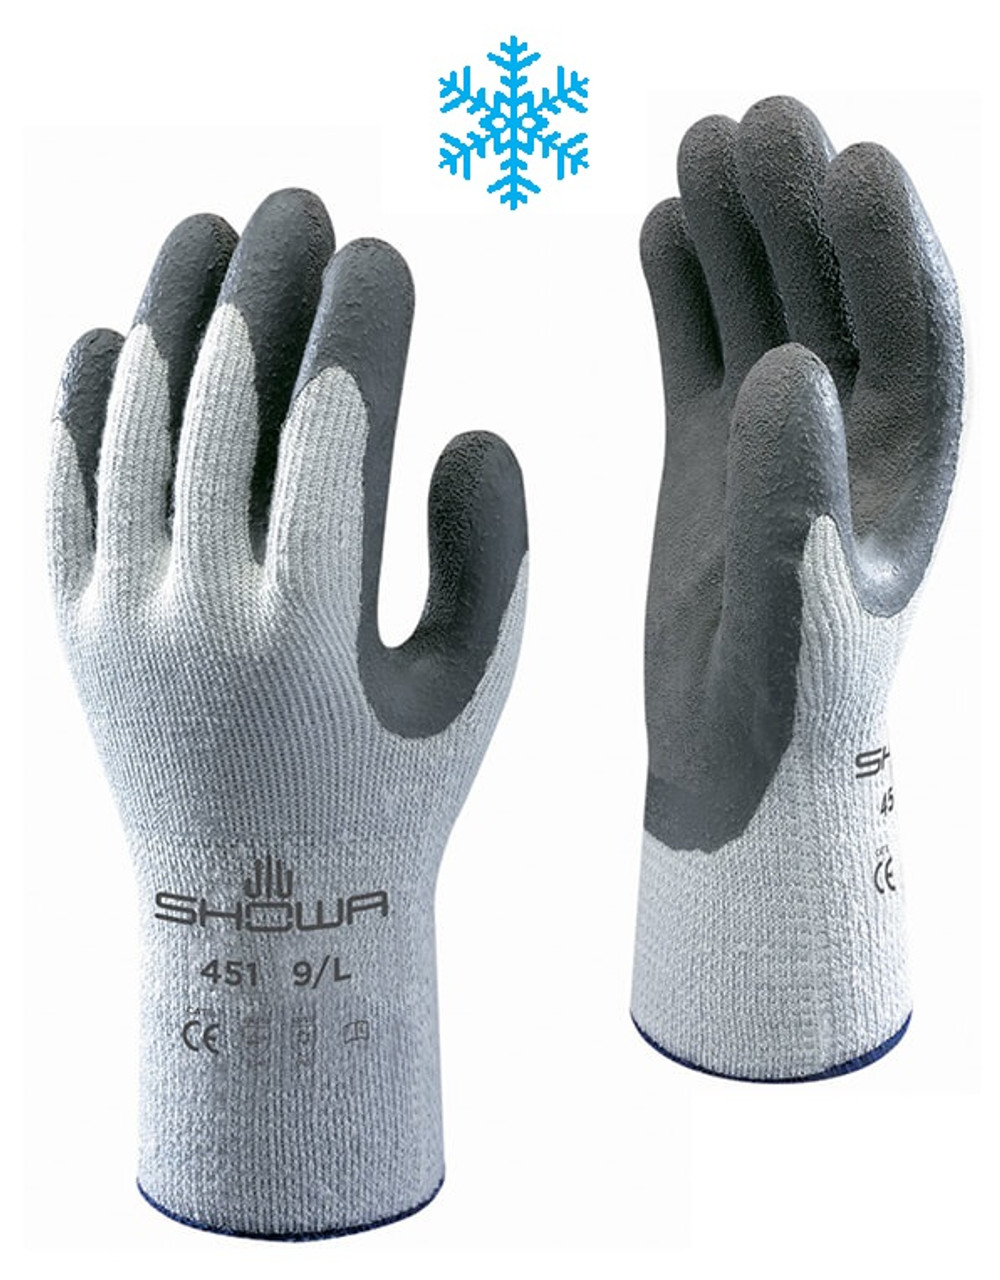 SHOWA 451 Therma-fit Insulated Latex Palm Coated Gloves